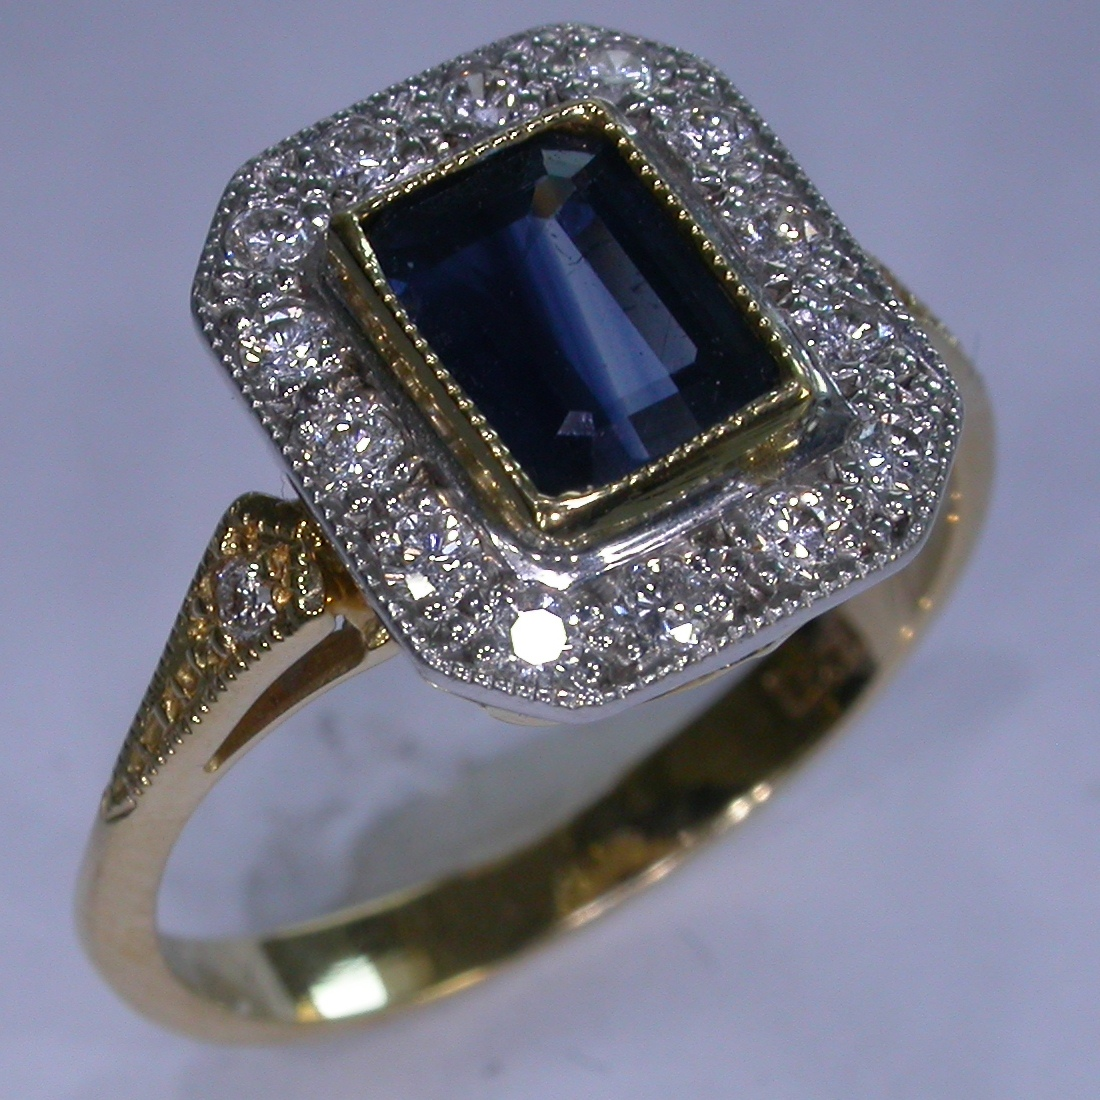 Colour Stone Engagement Rings in Melbourne - #4752